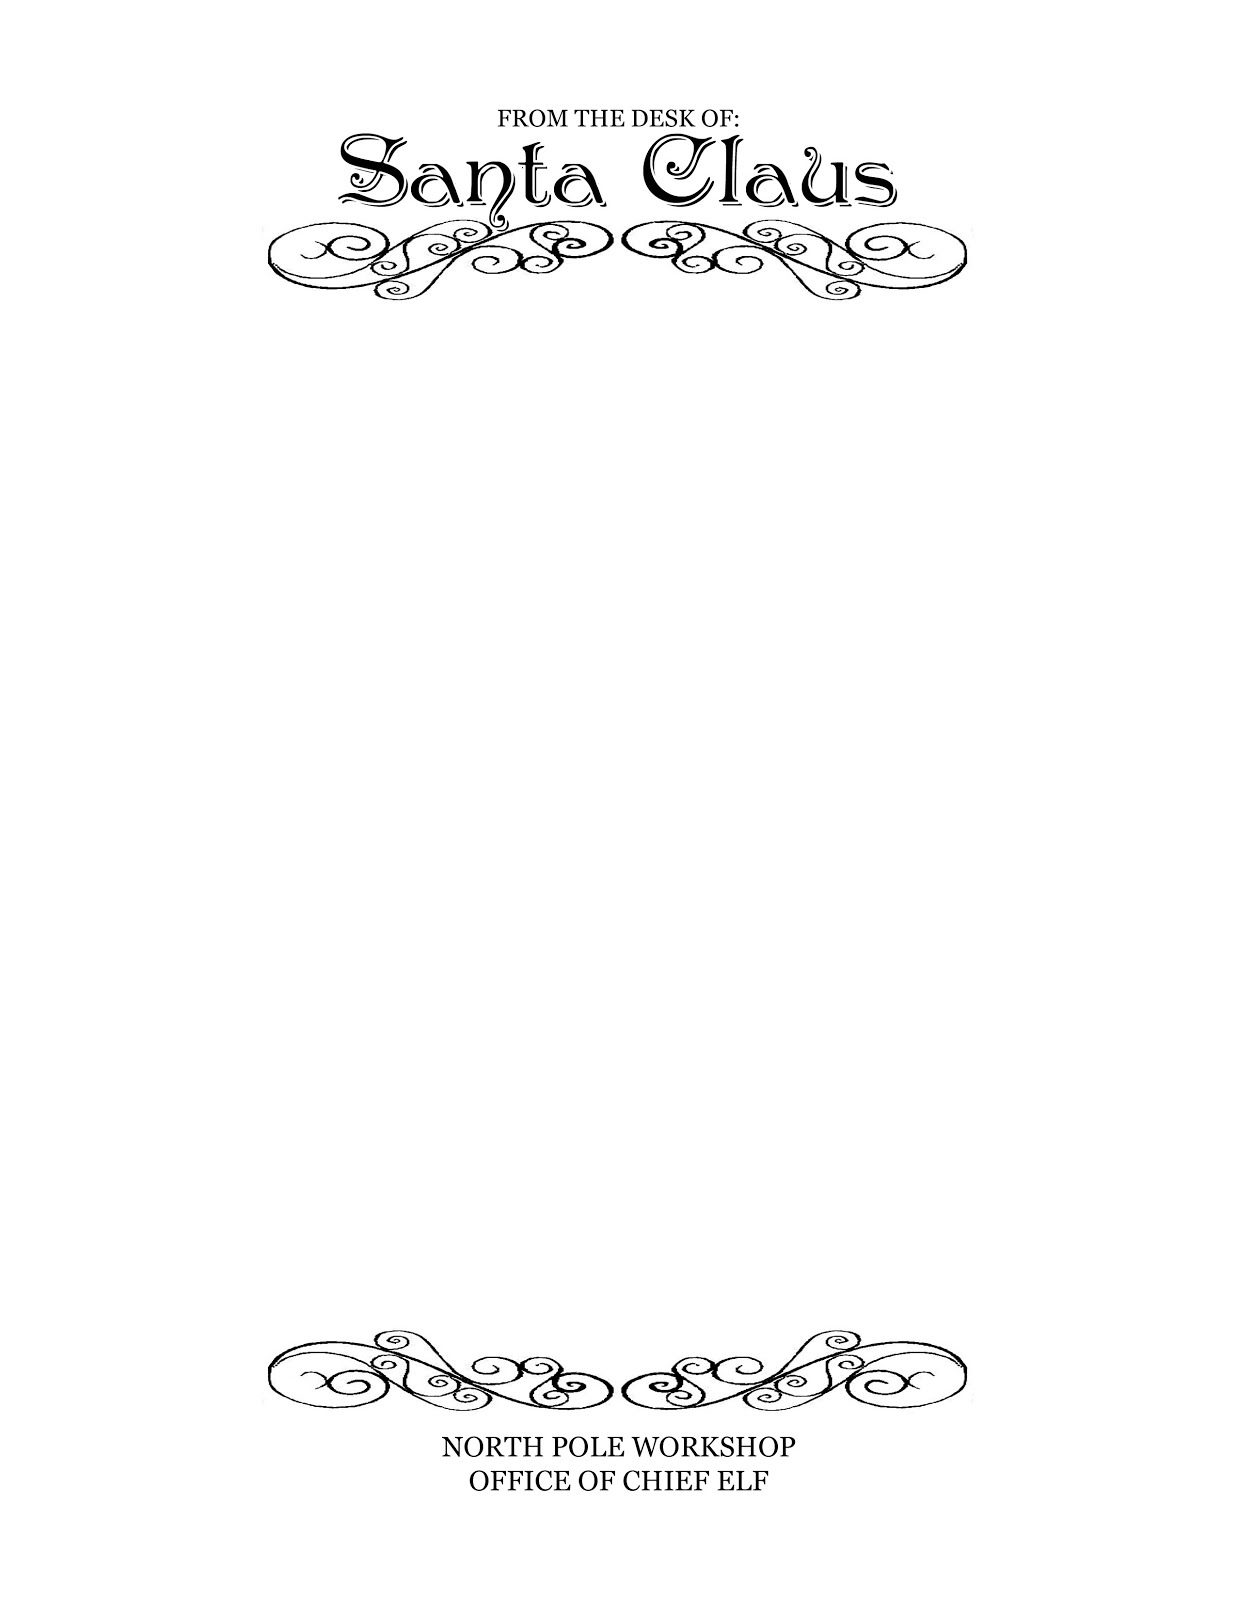 Printable Letterhead From Santa Claus | Homealterdecor.top